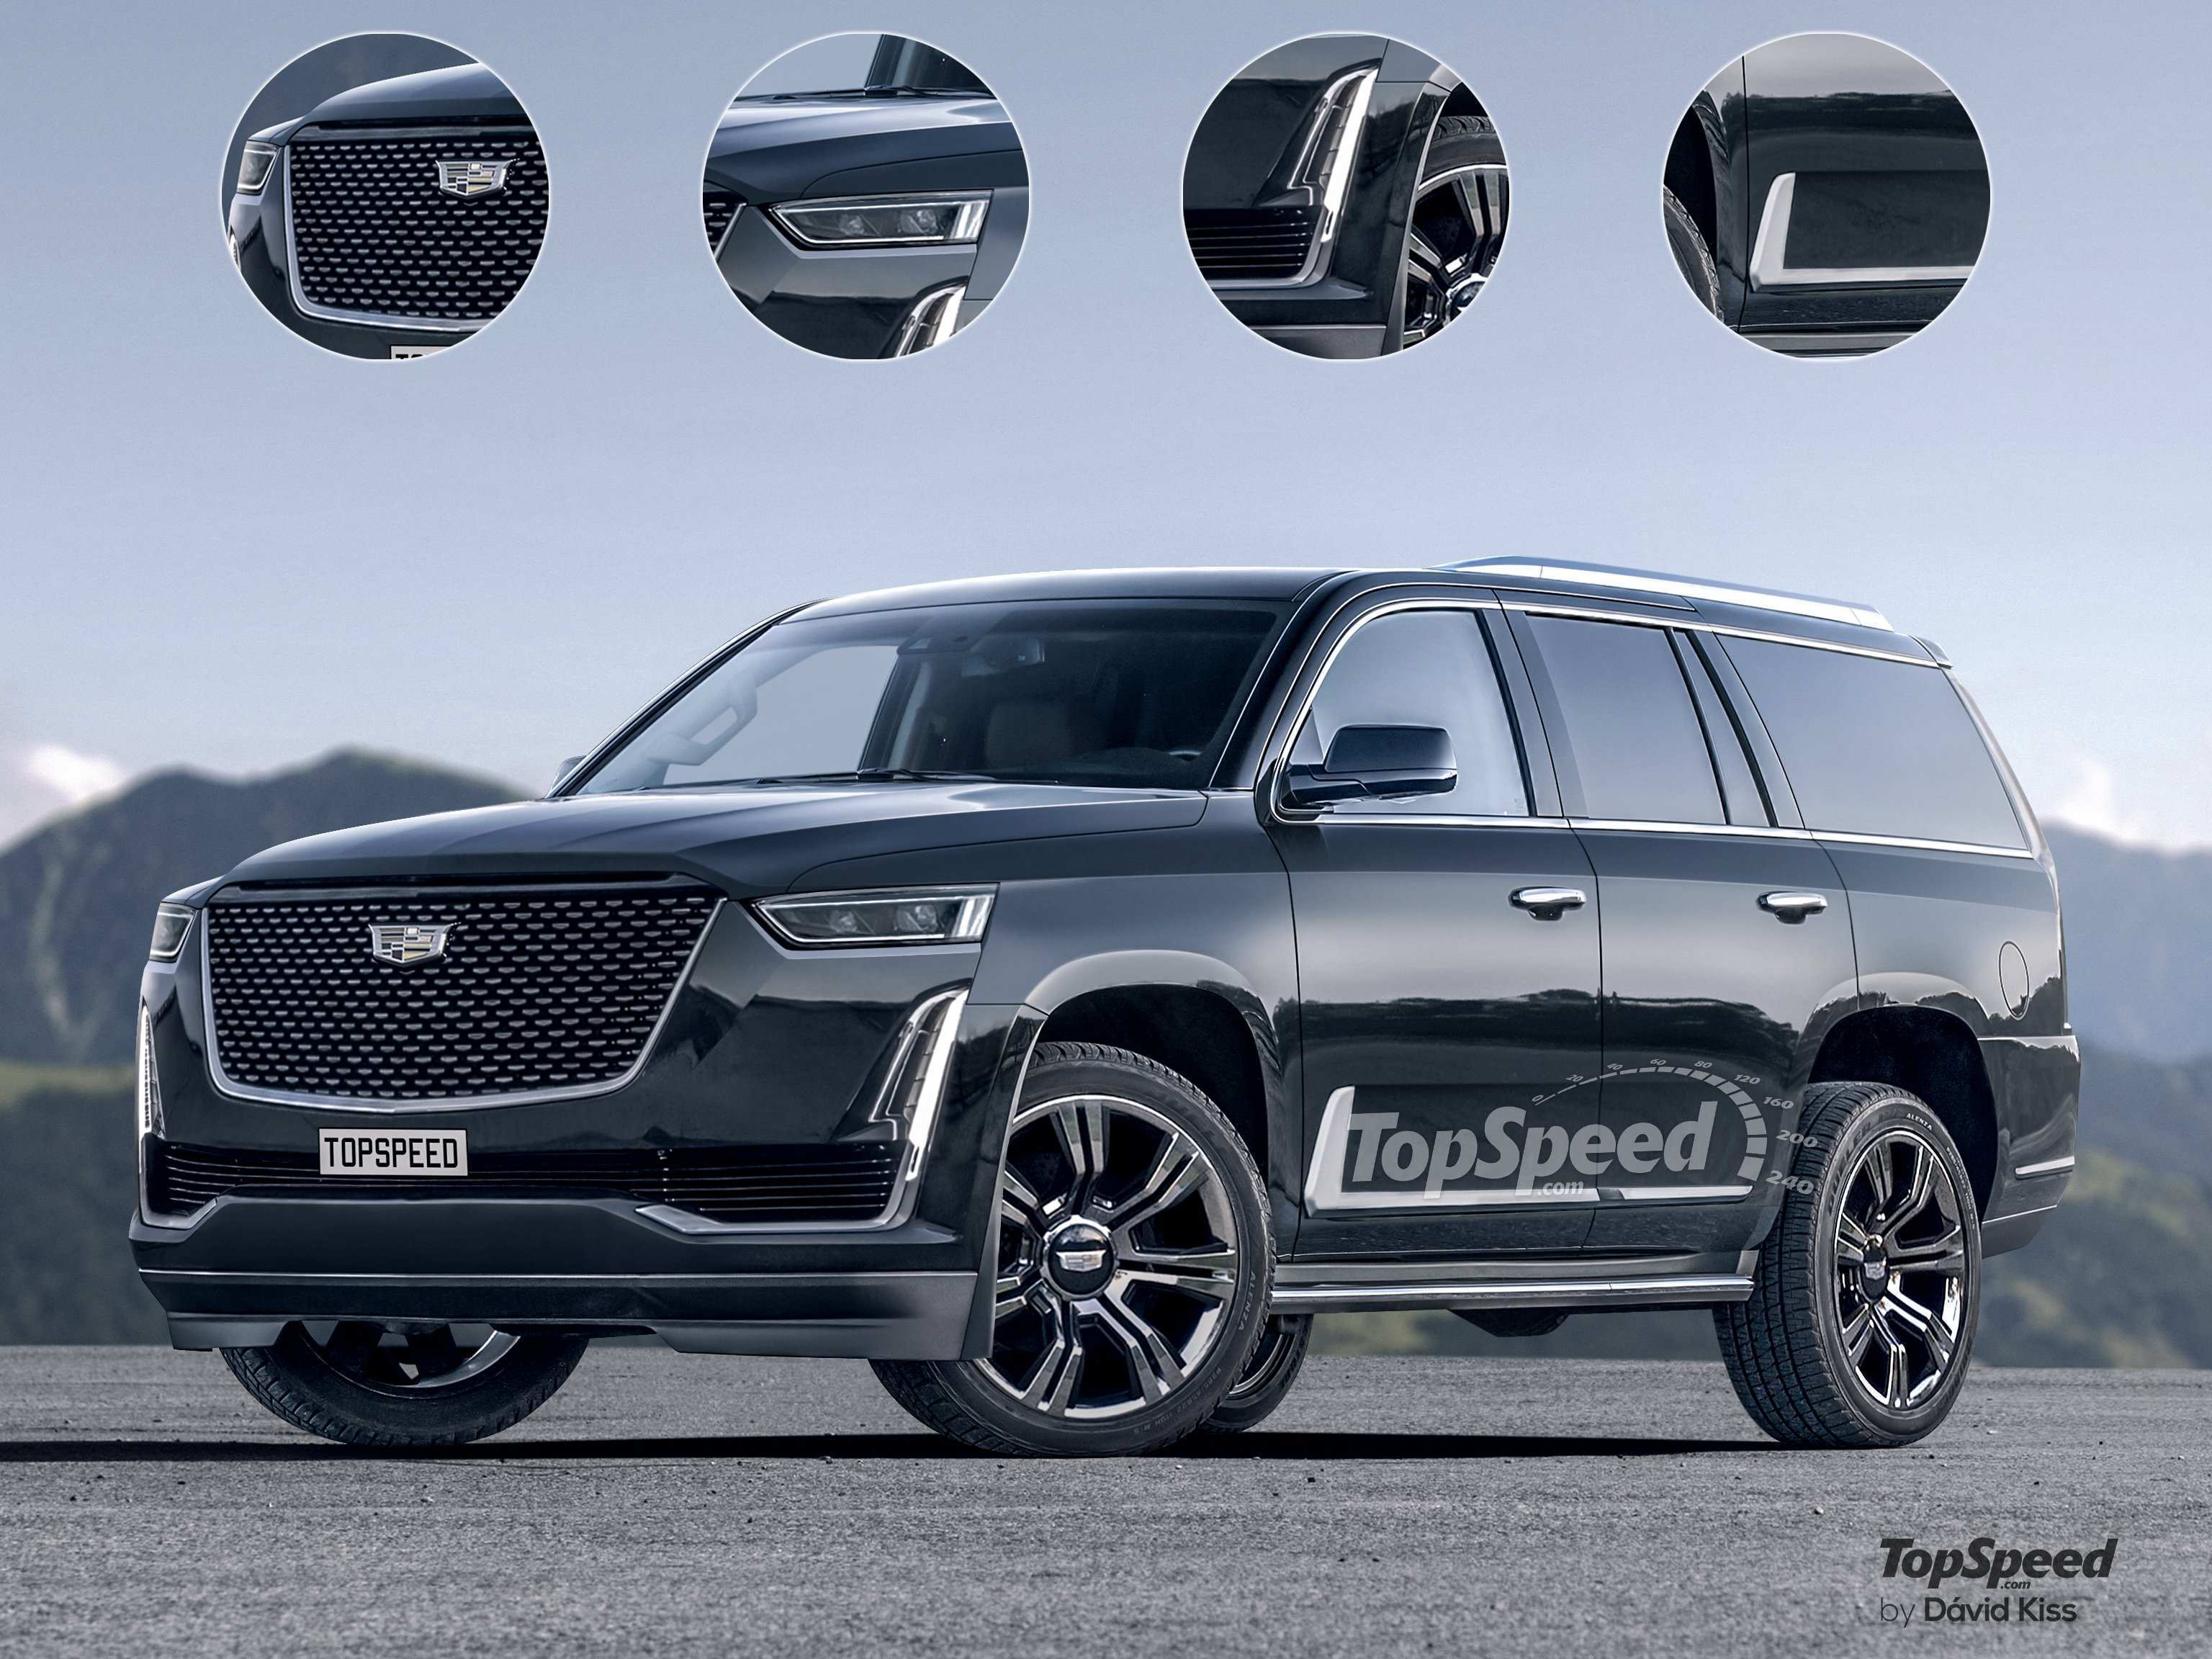 19 A When Will The 2020 Cadillac Escalade Be Released Picture